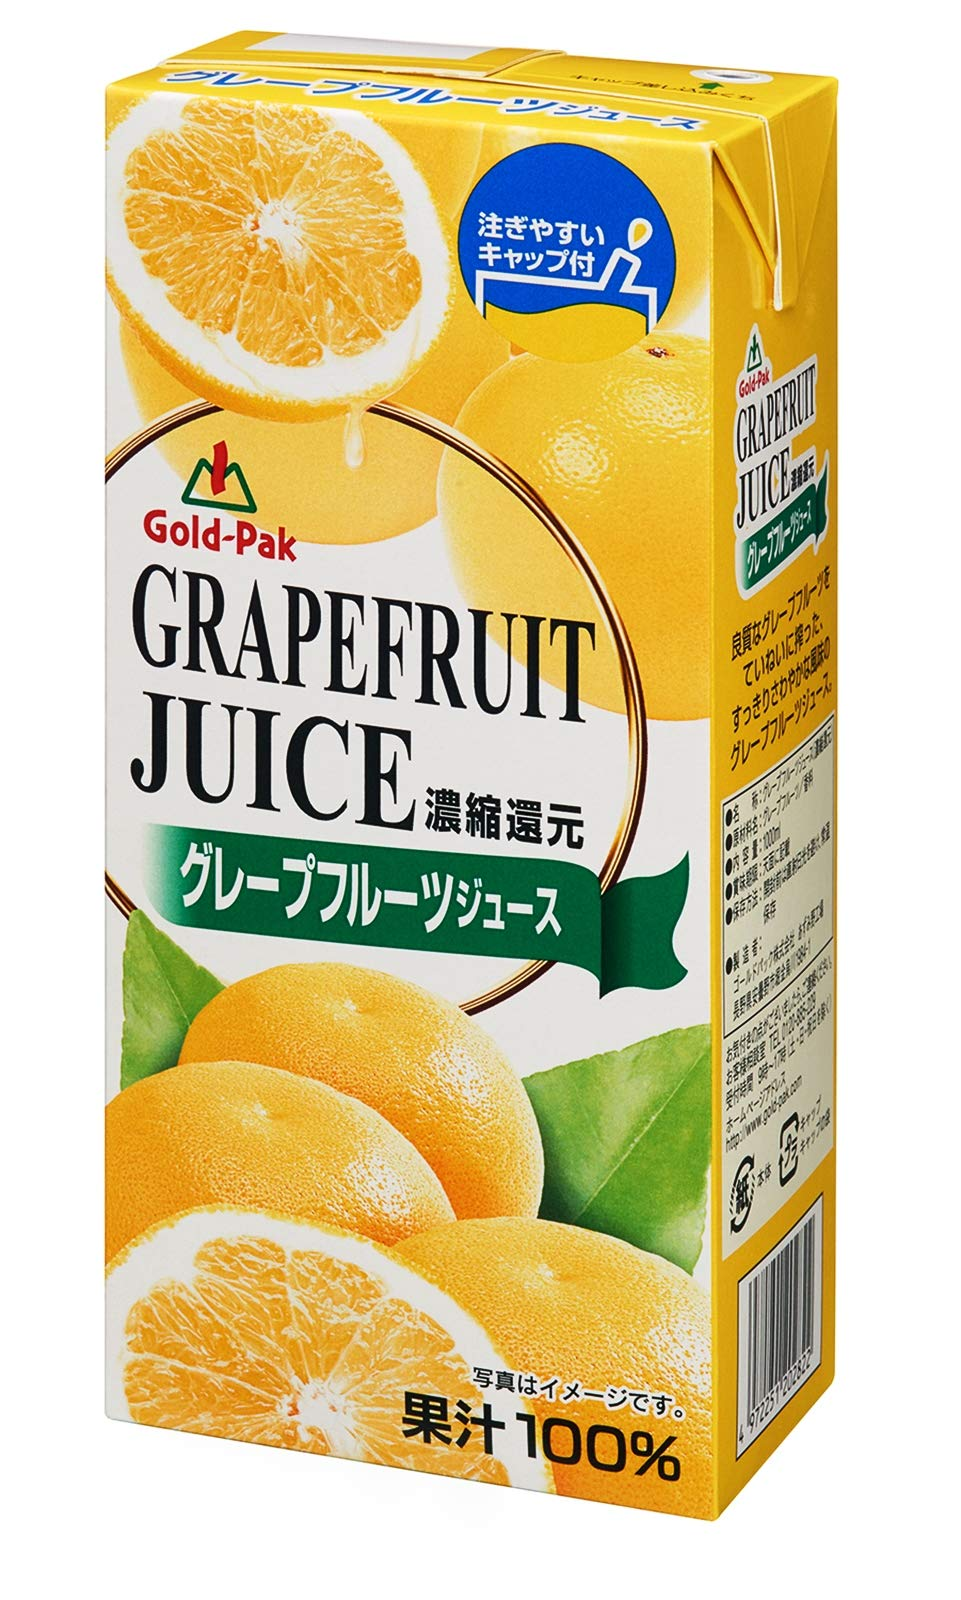 1LX6 this Gold Pack grapefruit juice